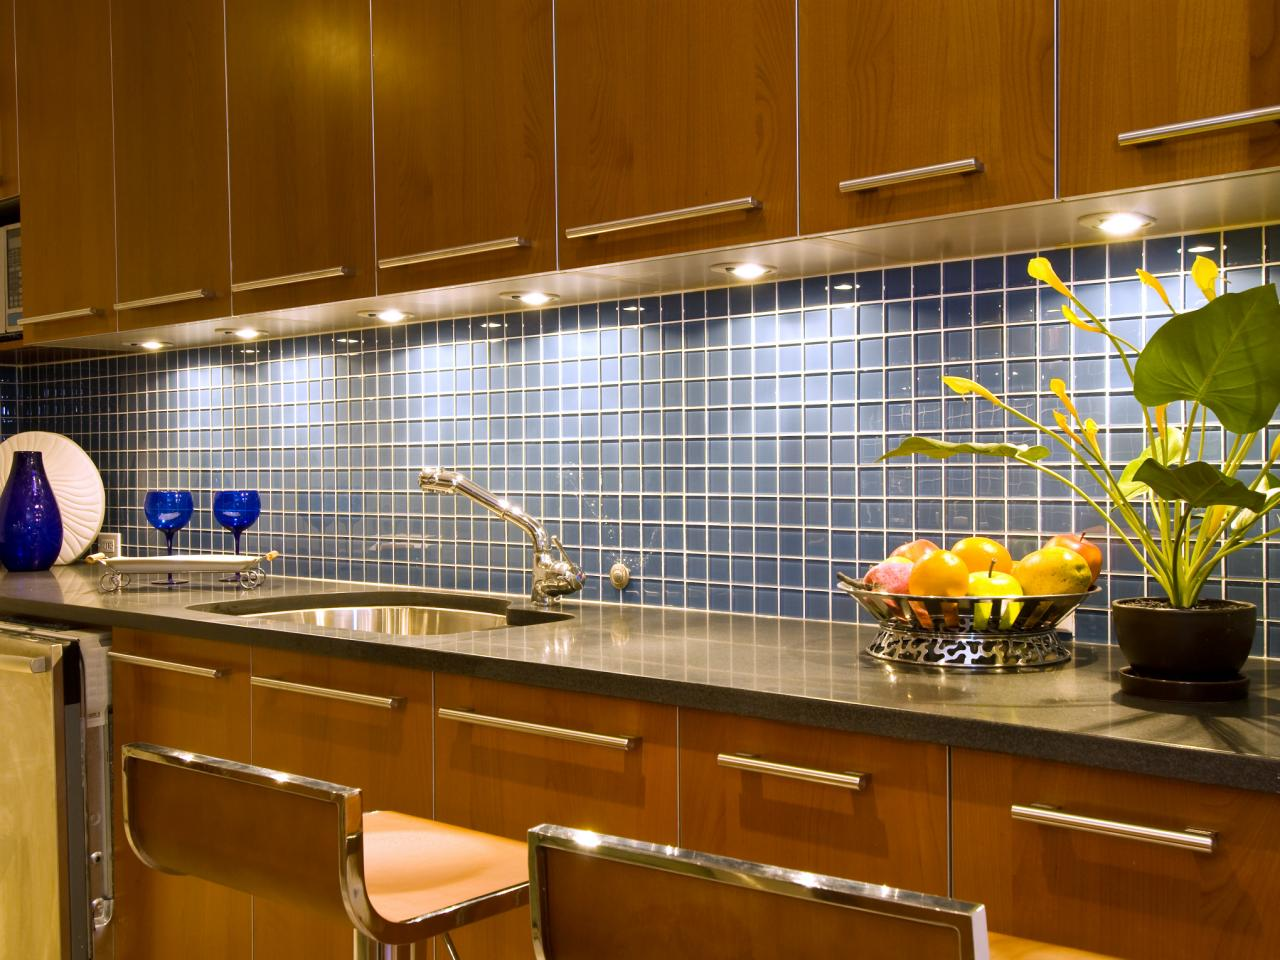 Kitchen counter backsplashes pictures ideas from hgtv hgtv Design kitchen backsplash glass tiles